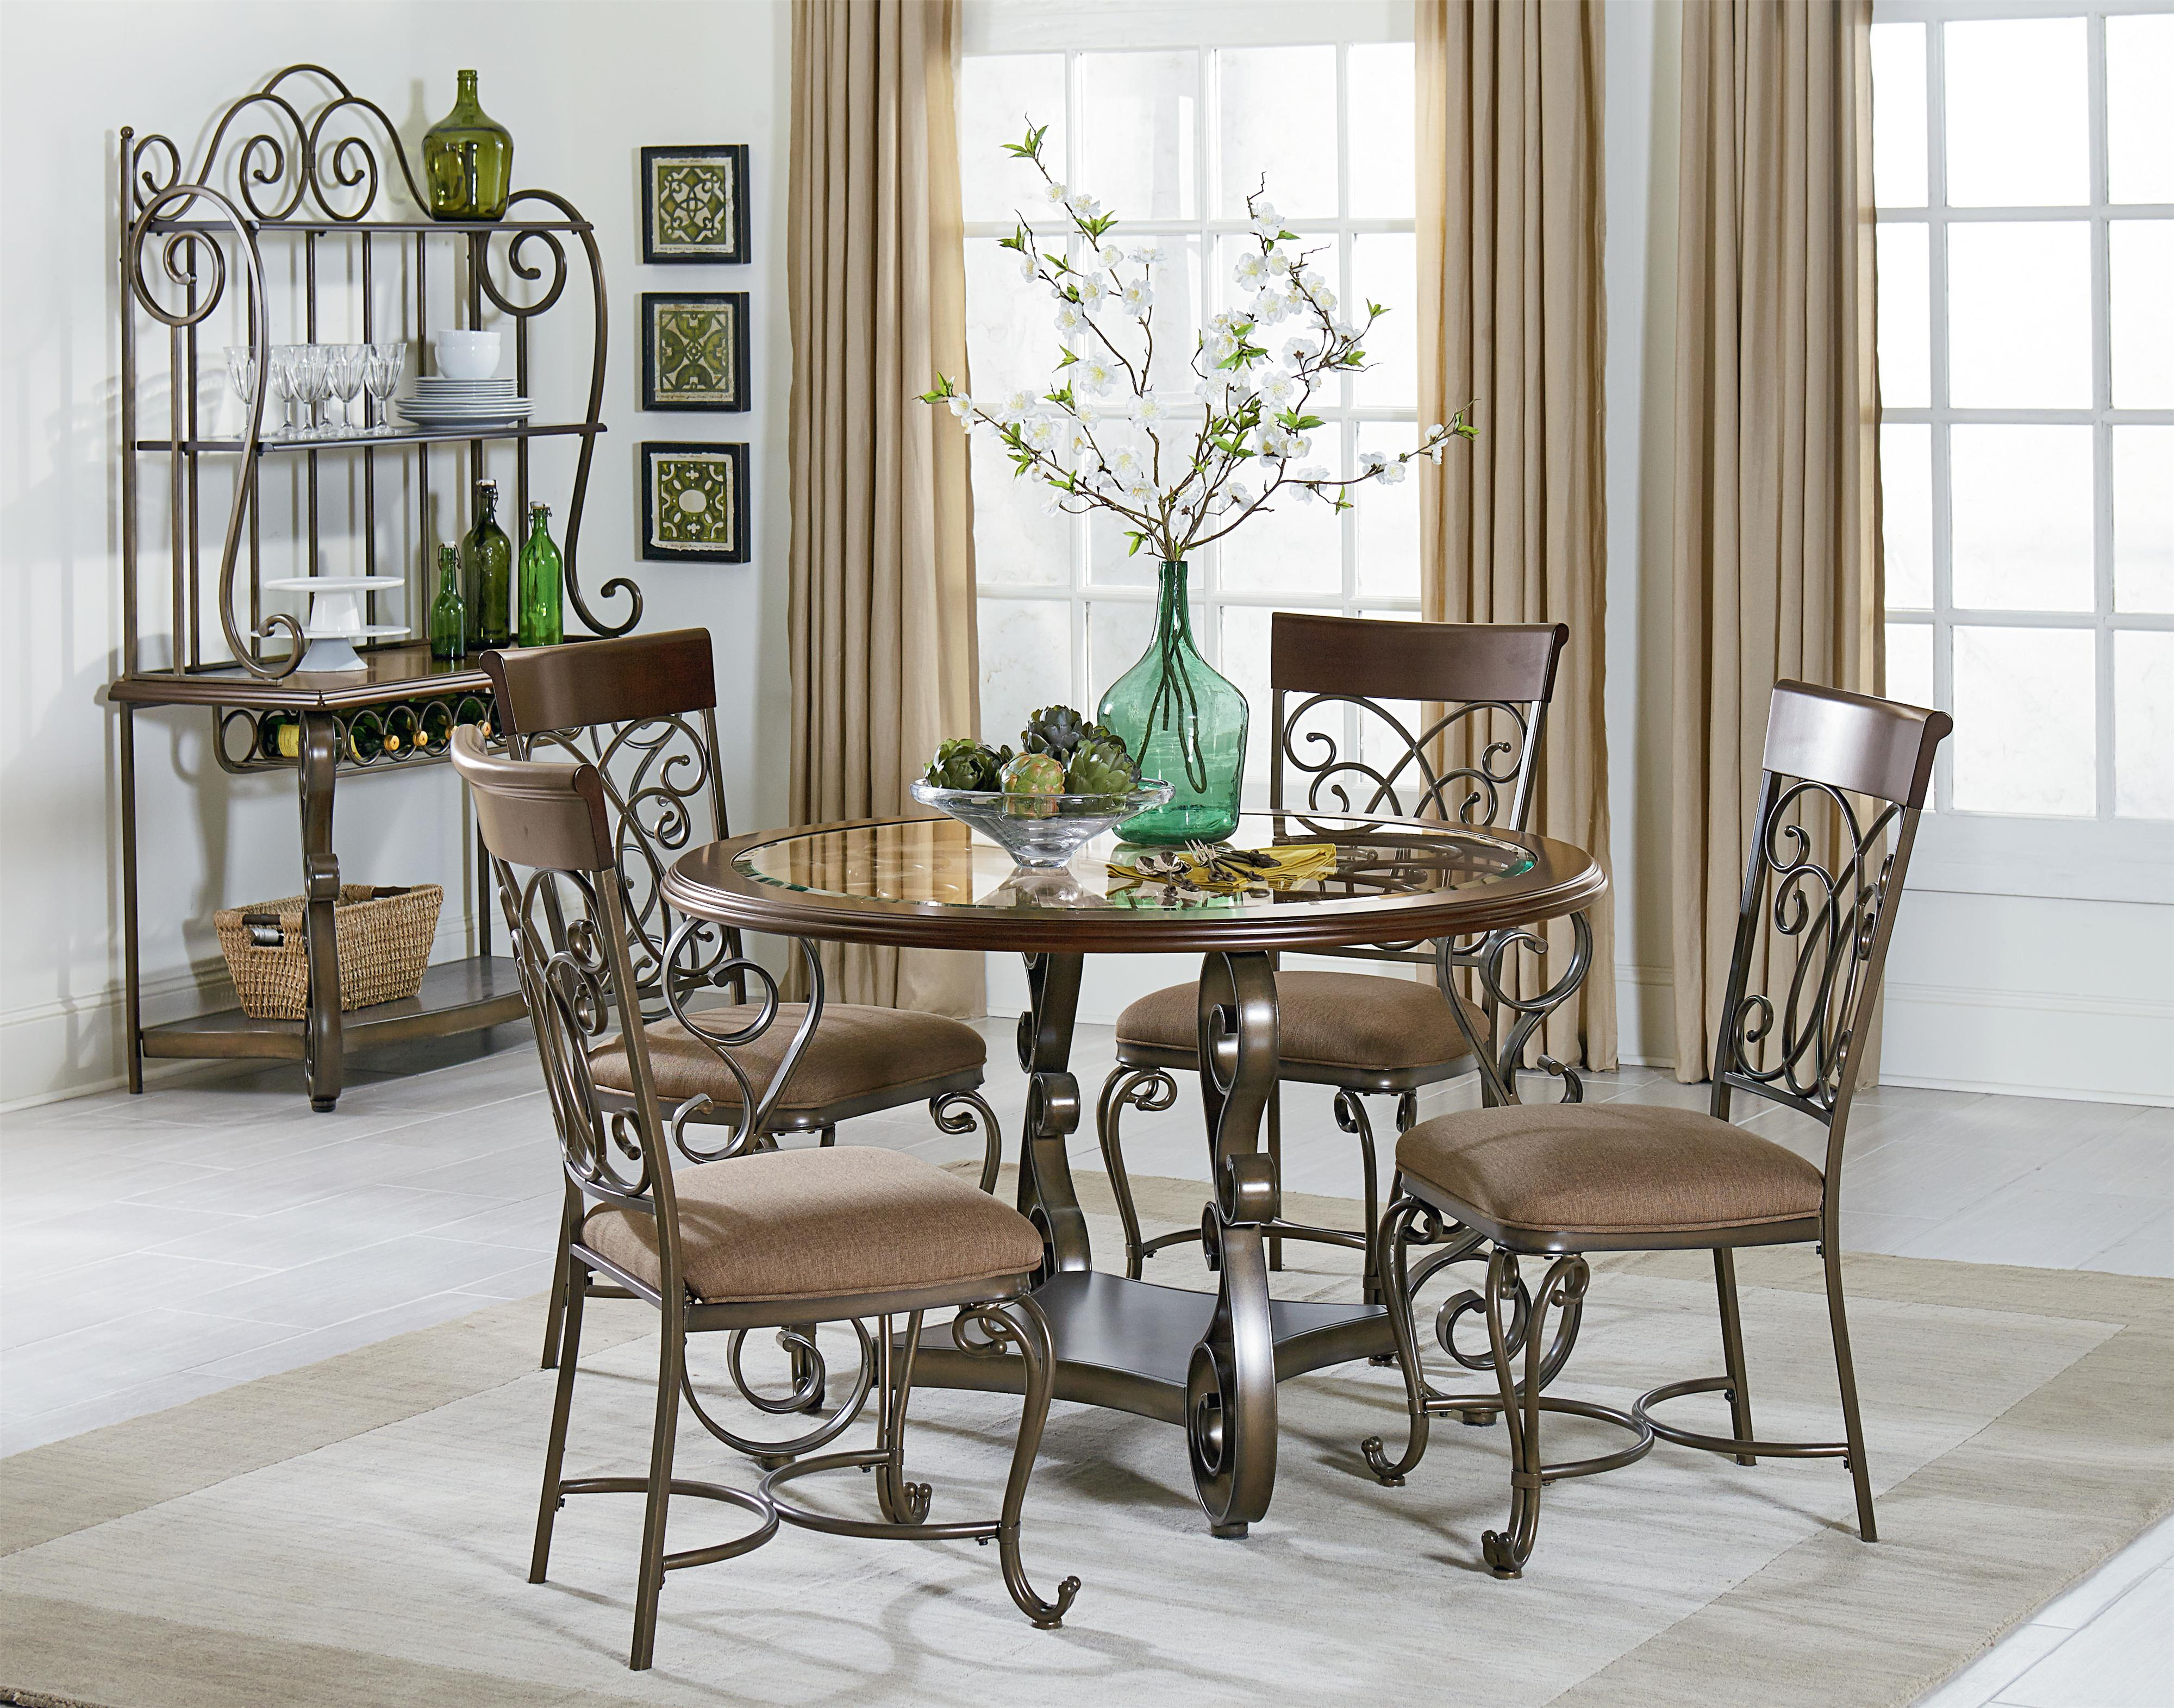 Standard Furniture Bombay Casual Dining Room Group Lindy S